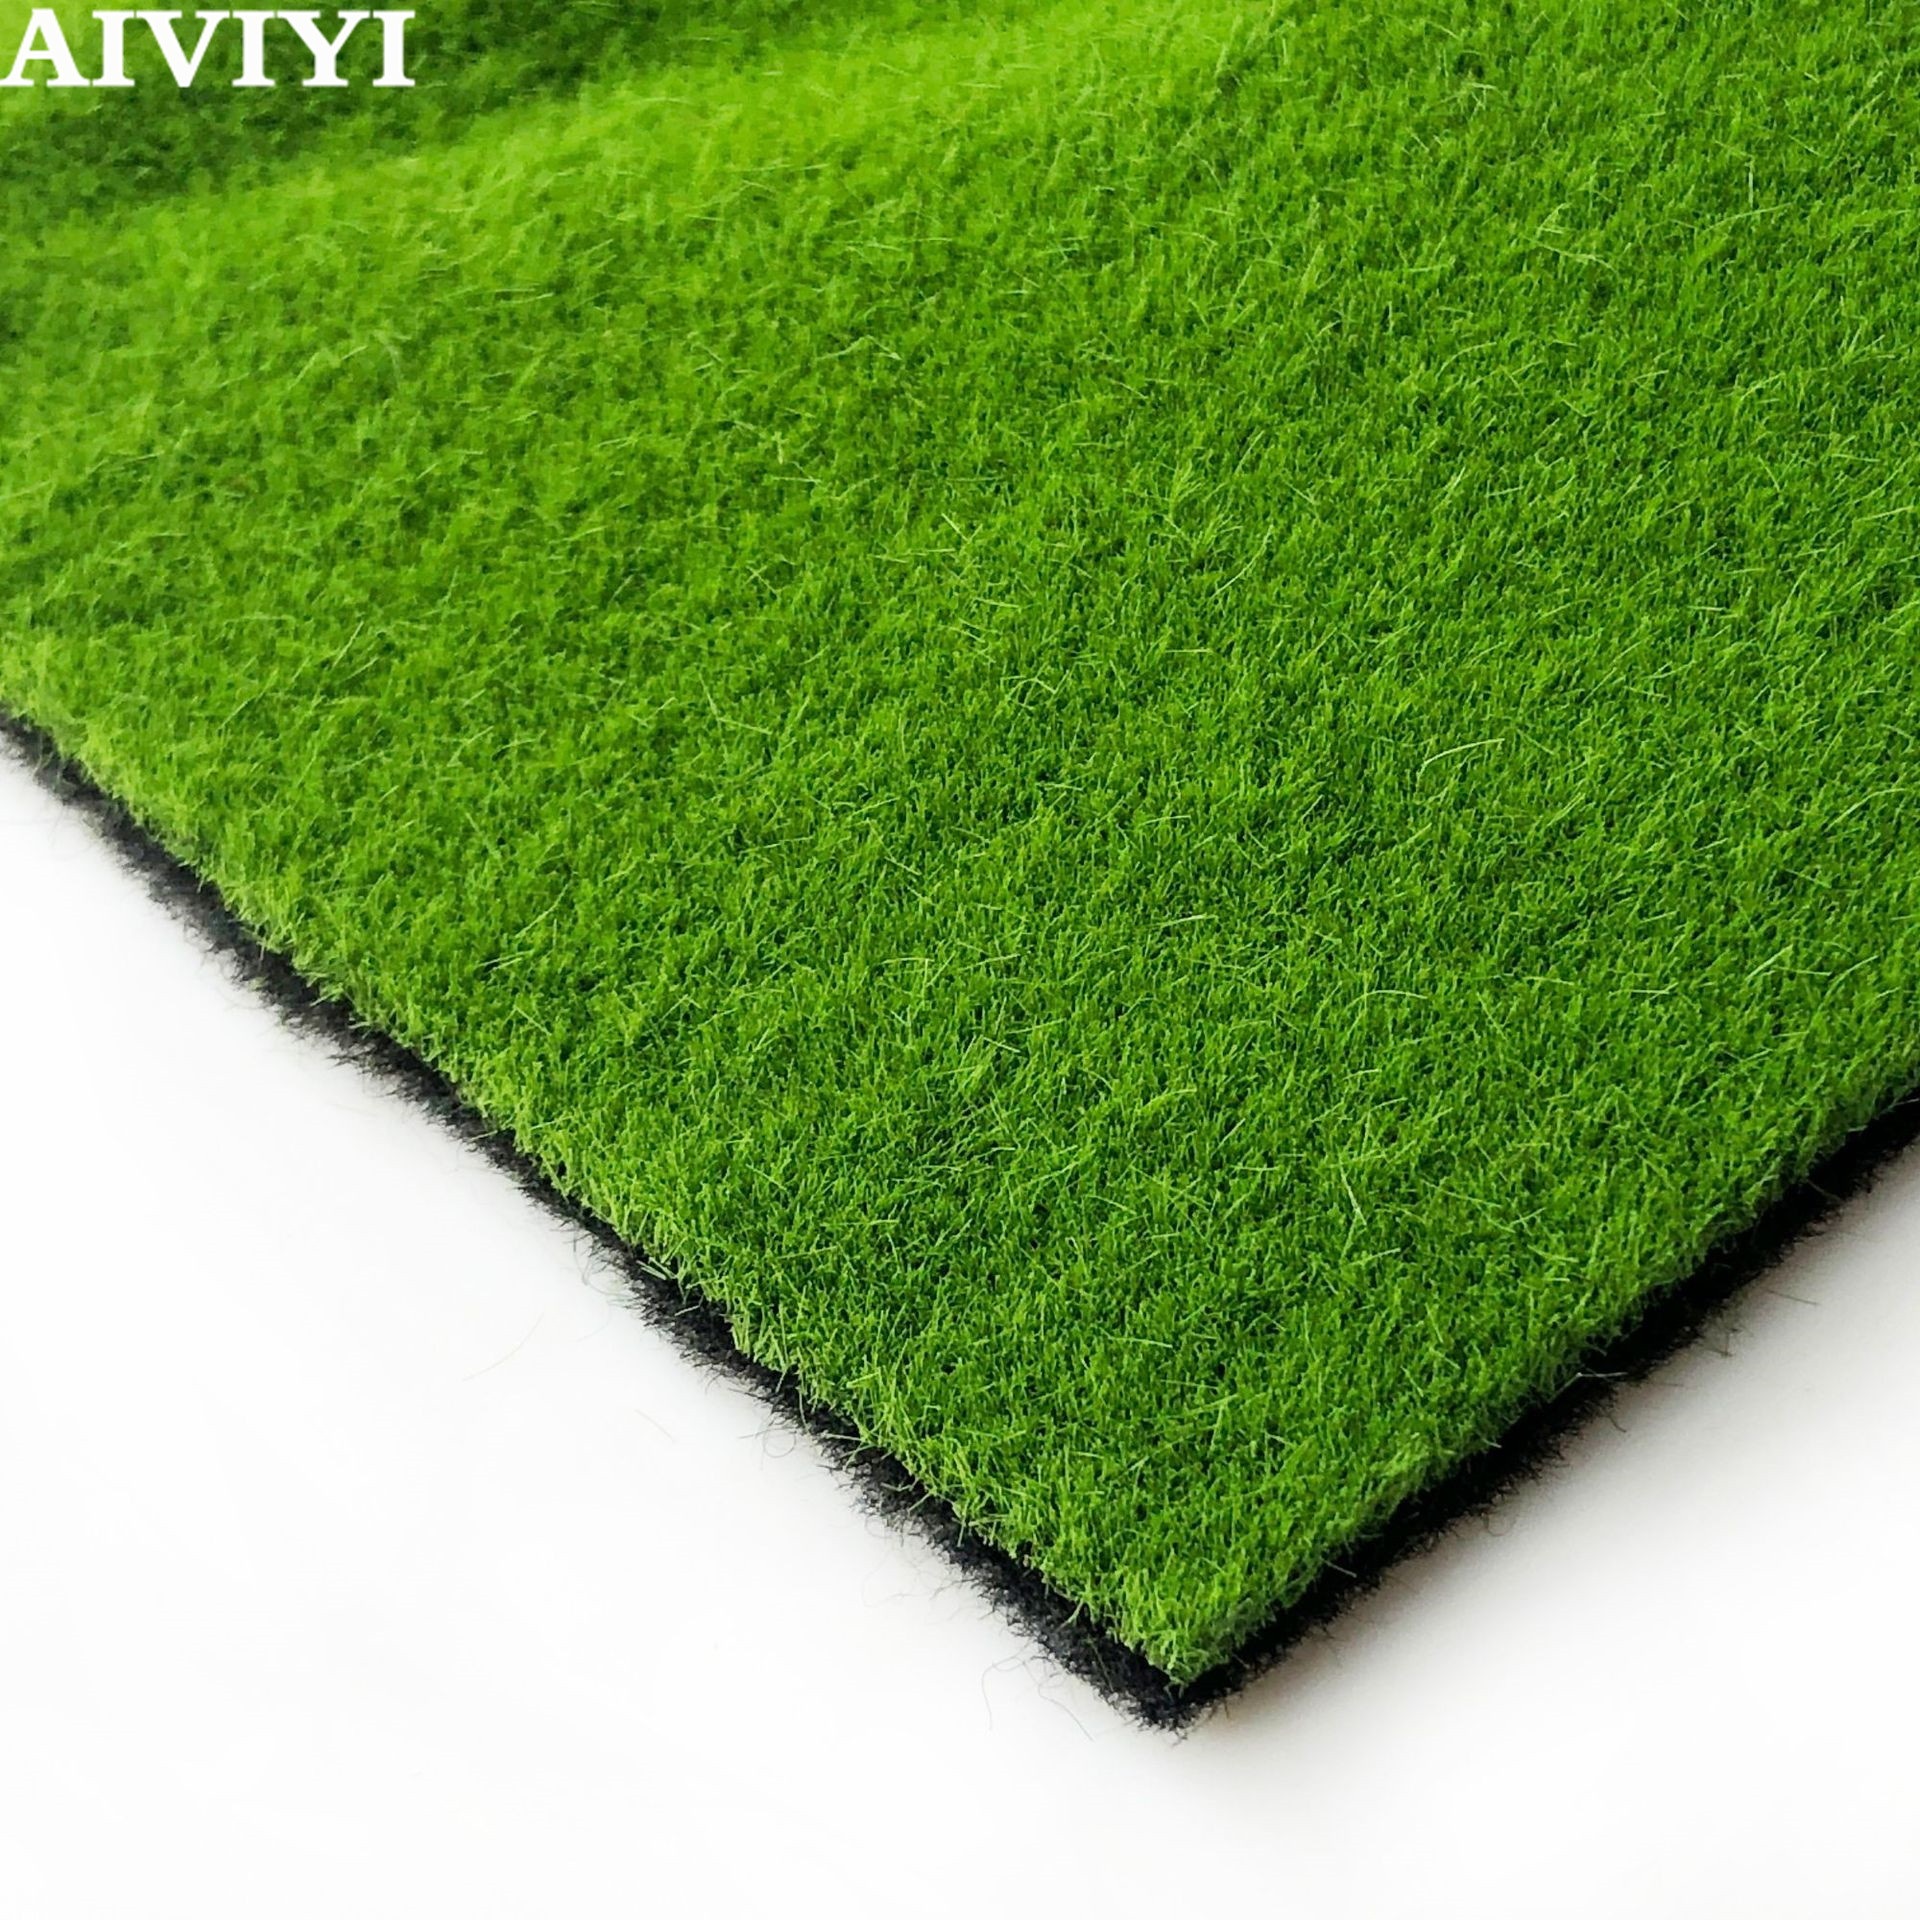 Green Plant Bottle-Decoration Turf-Wall Lawn Artificial-Moss Garden Wedding Mini Micro title=